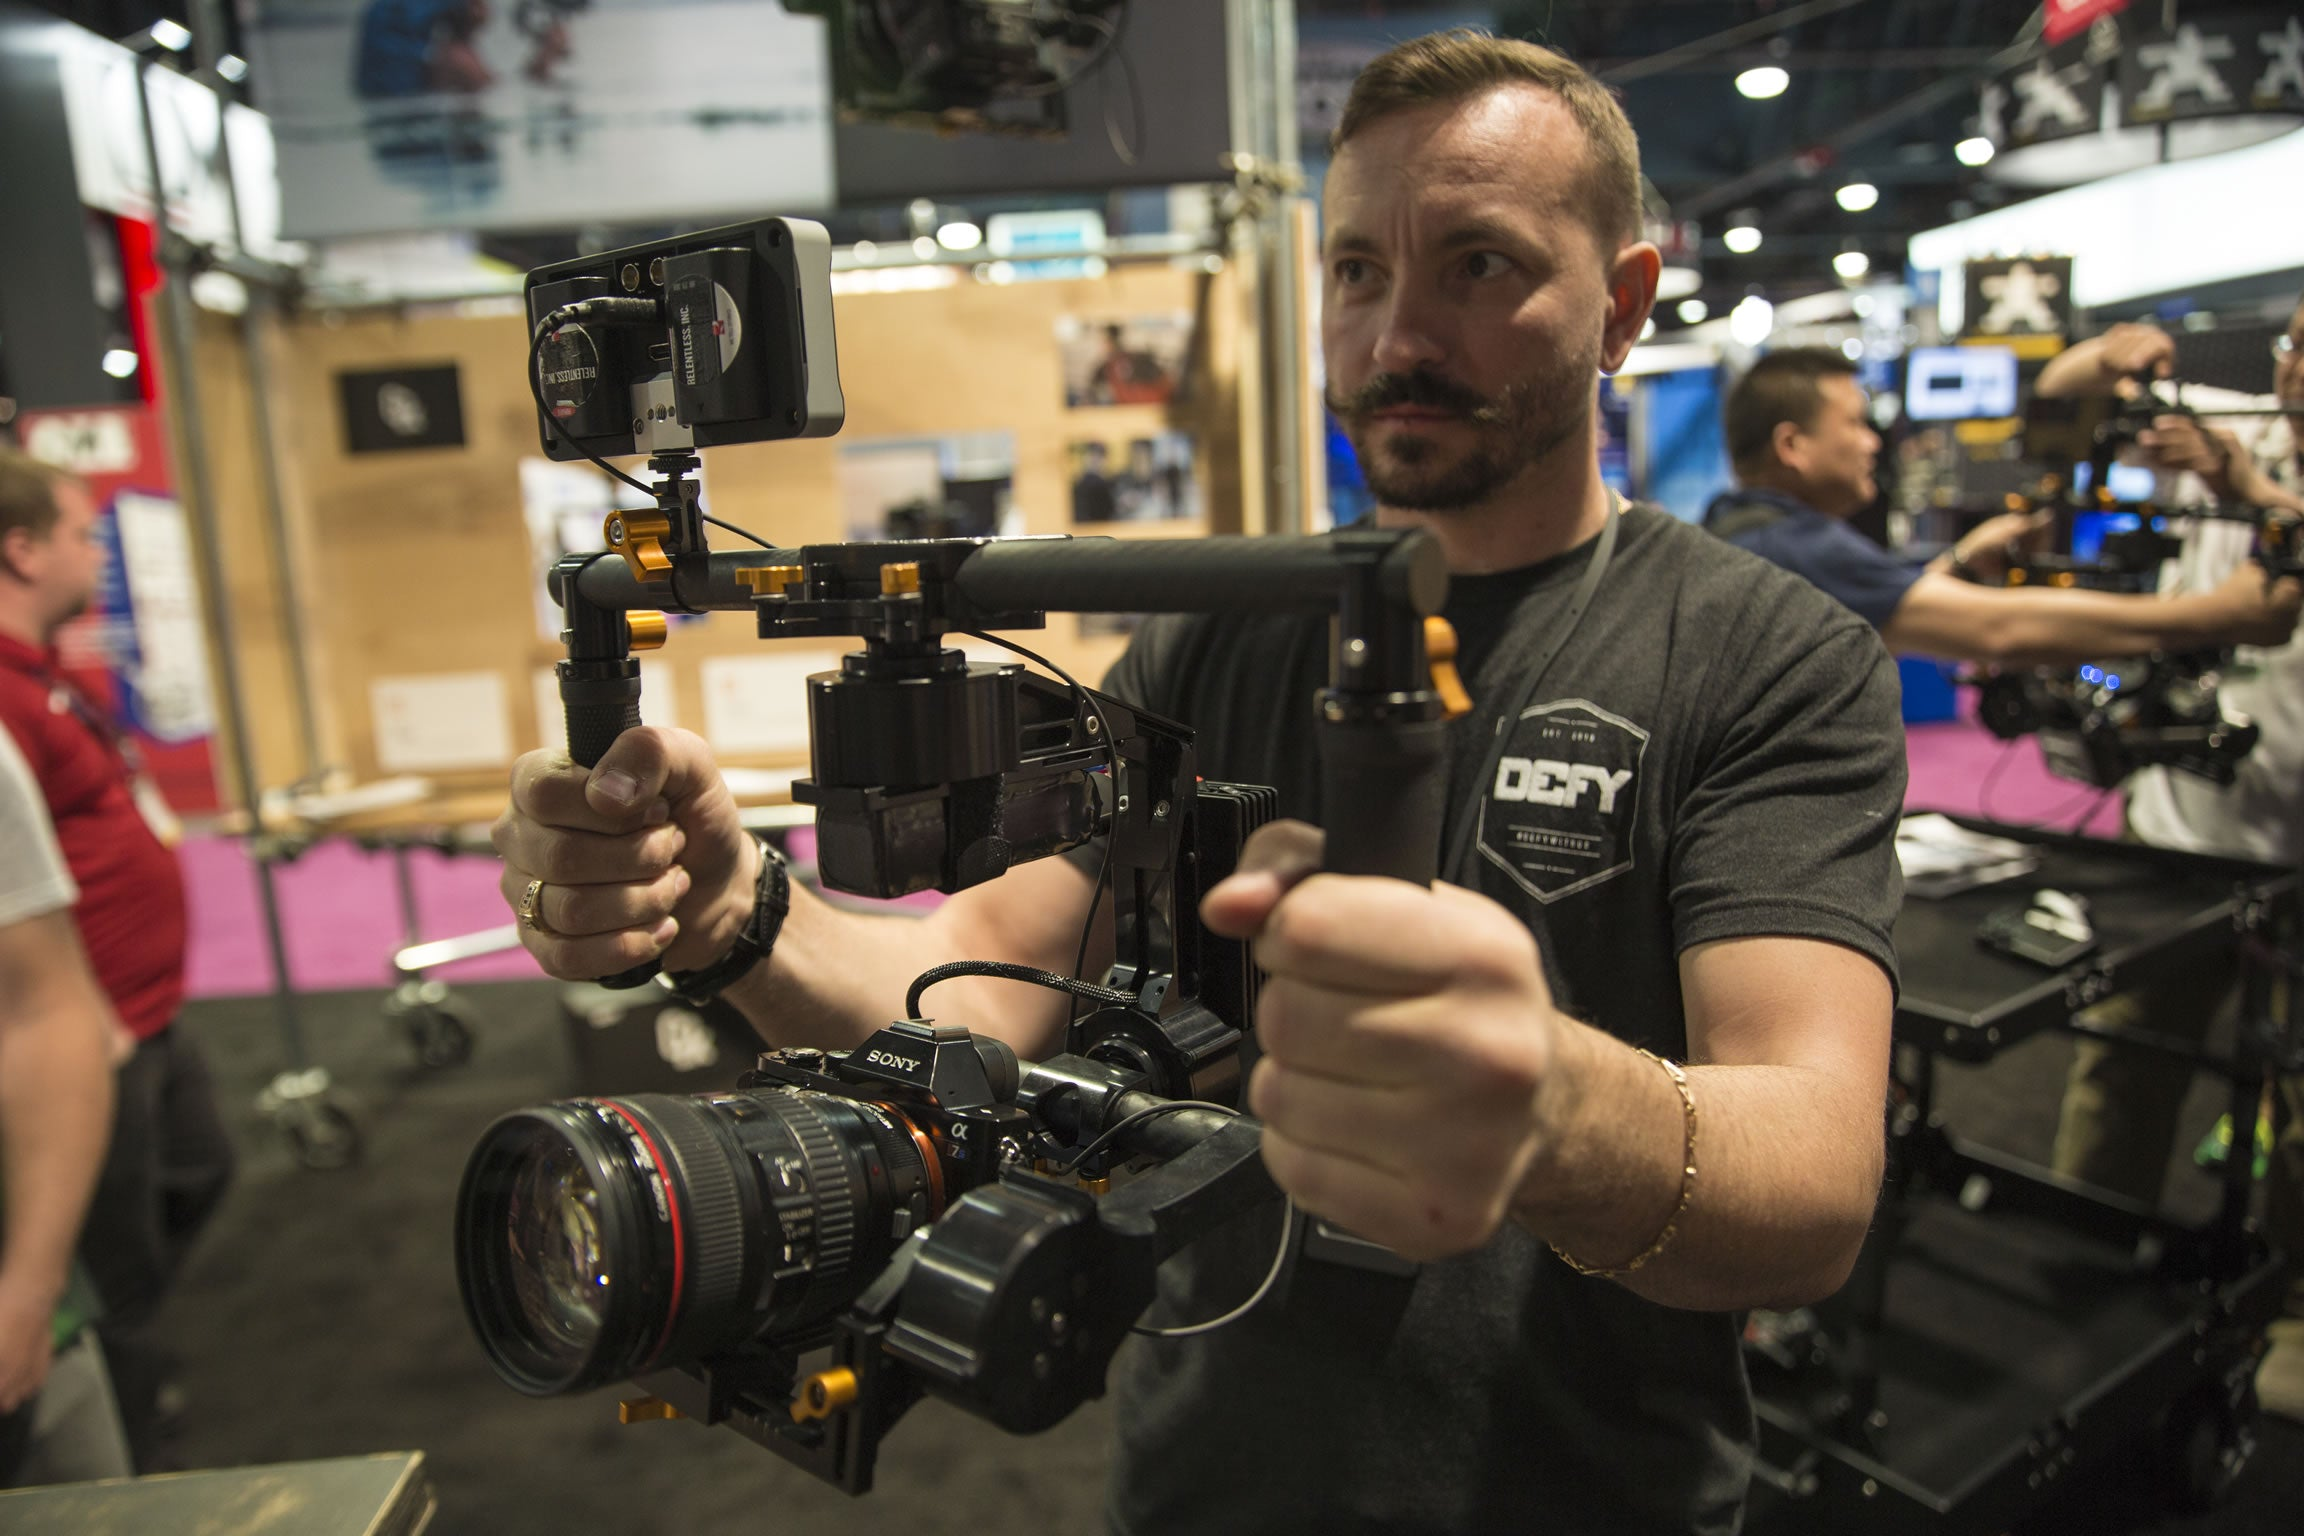 Defy GX2 and SmallHD 502 Field Monitor